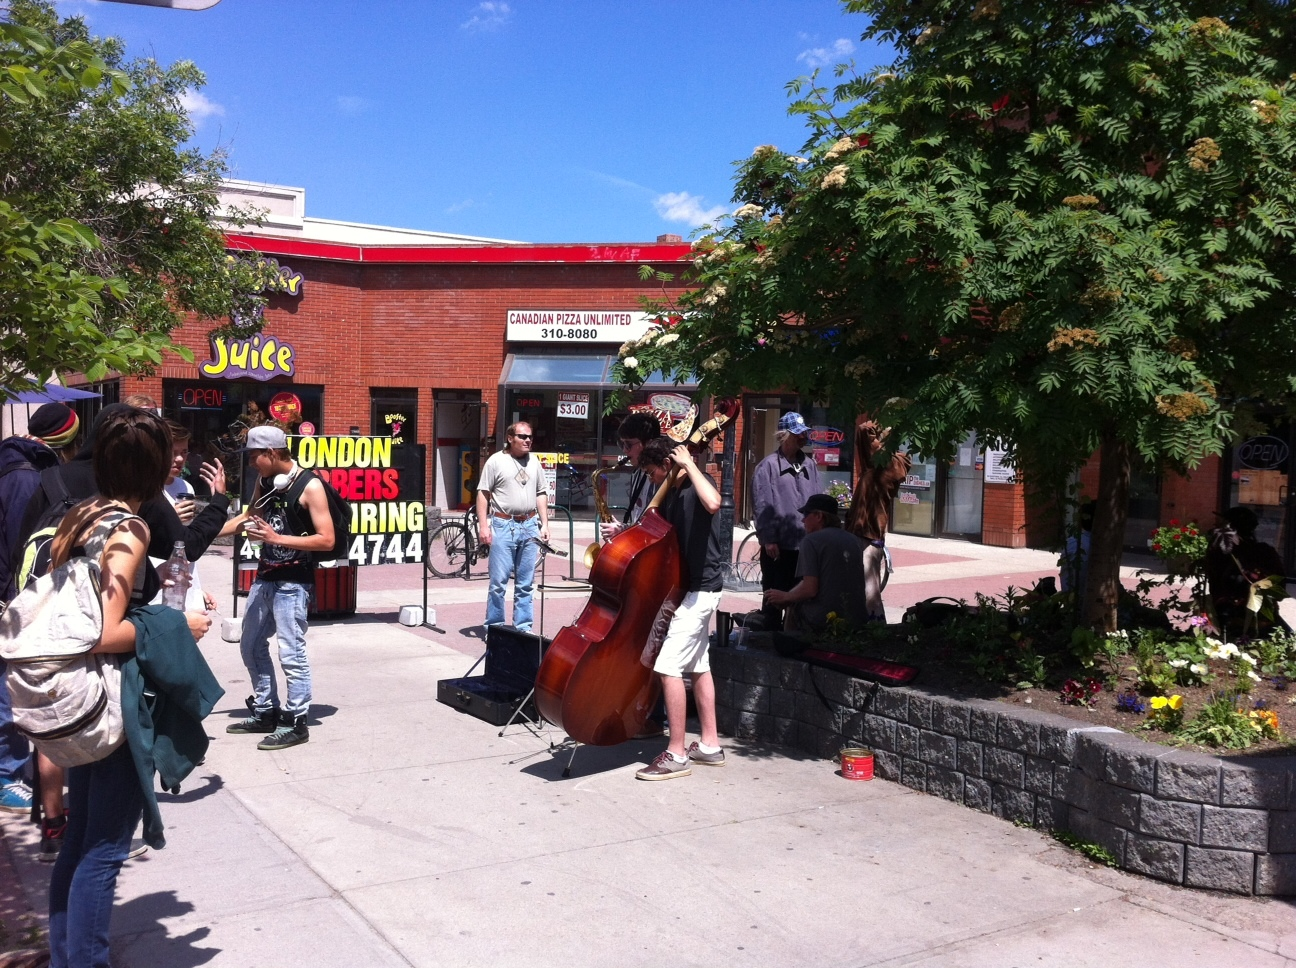 Kensington's 10th Street Plaza next to Roasterie is a popular busking spot.